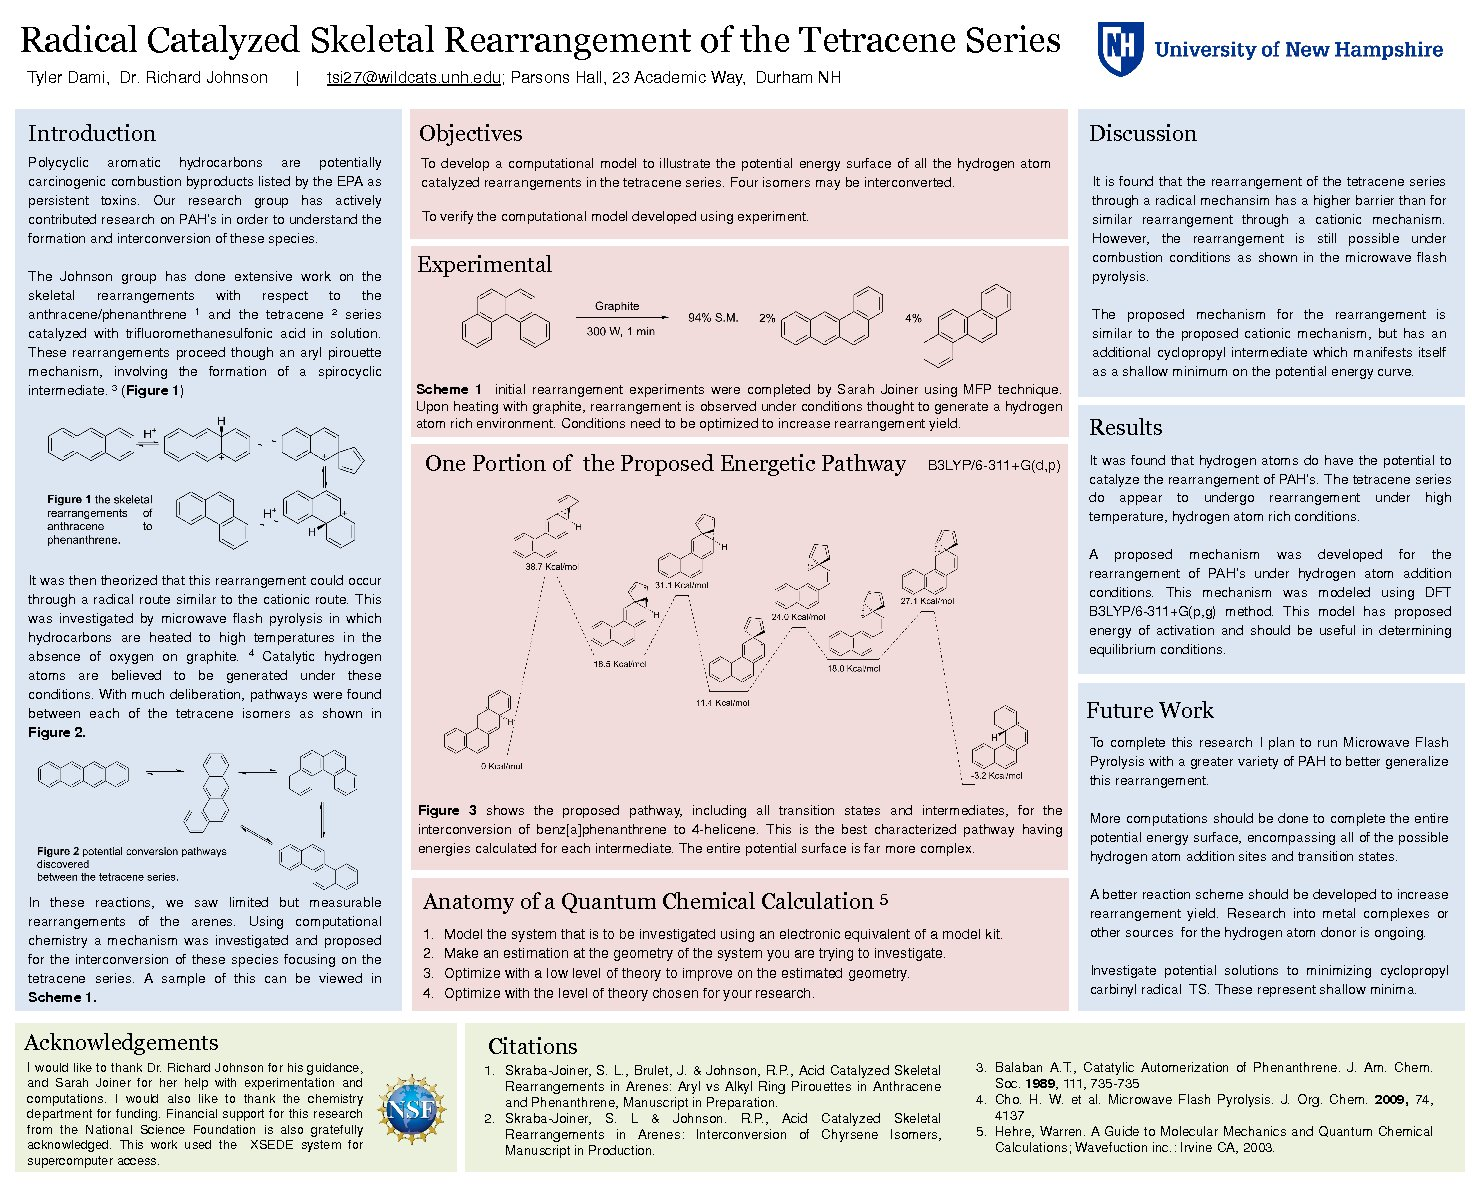 Radical Catalyzed Skeletal Rearrangement Of The Tetracene Series by tsi27